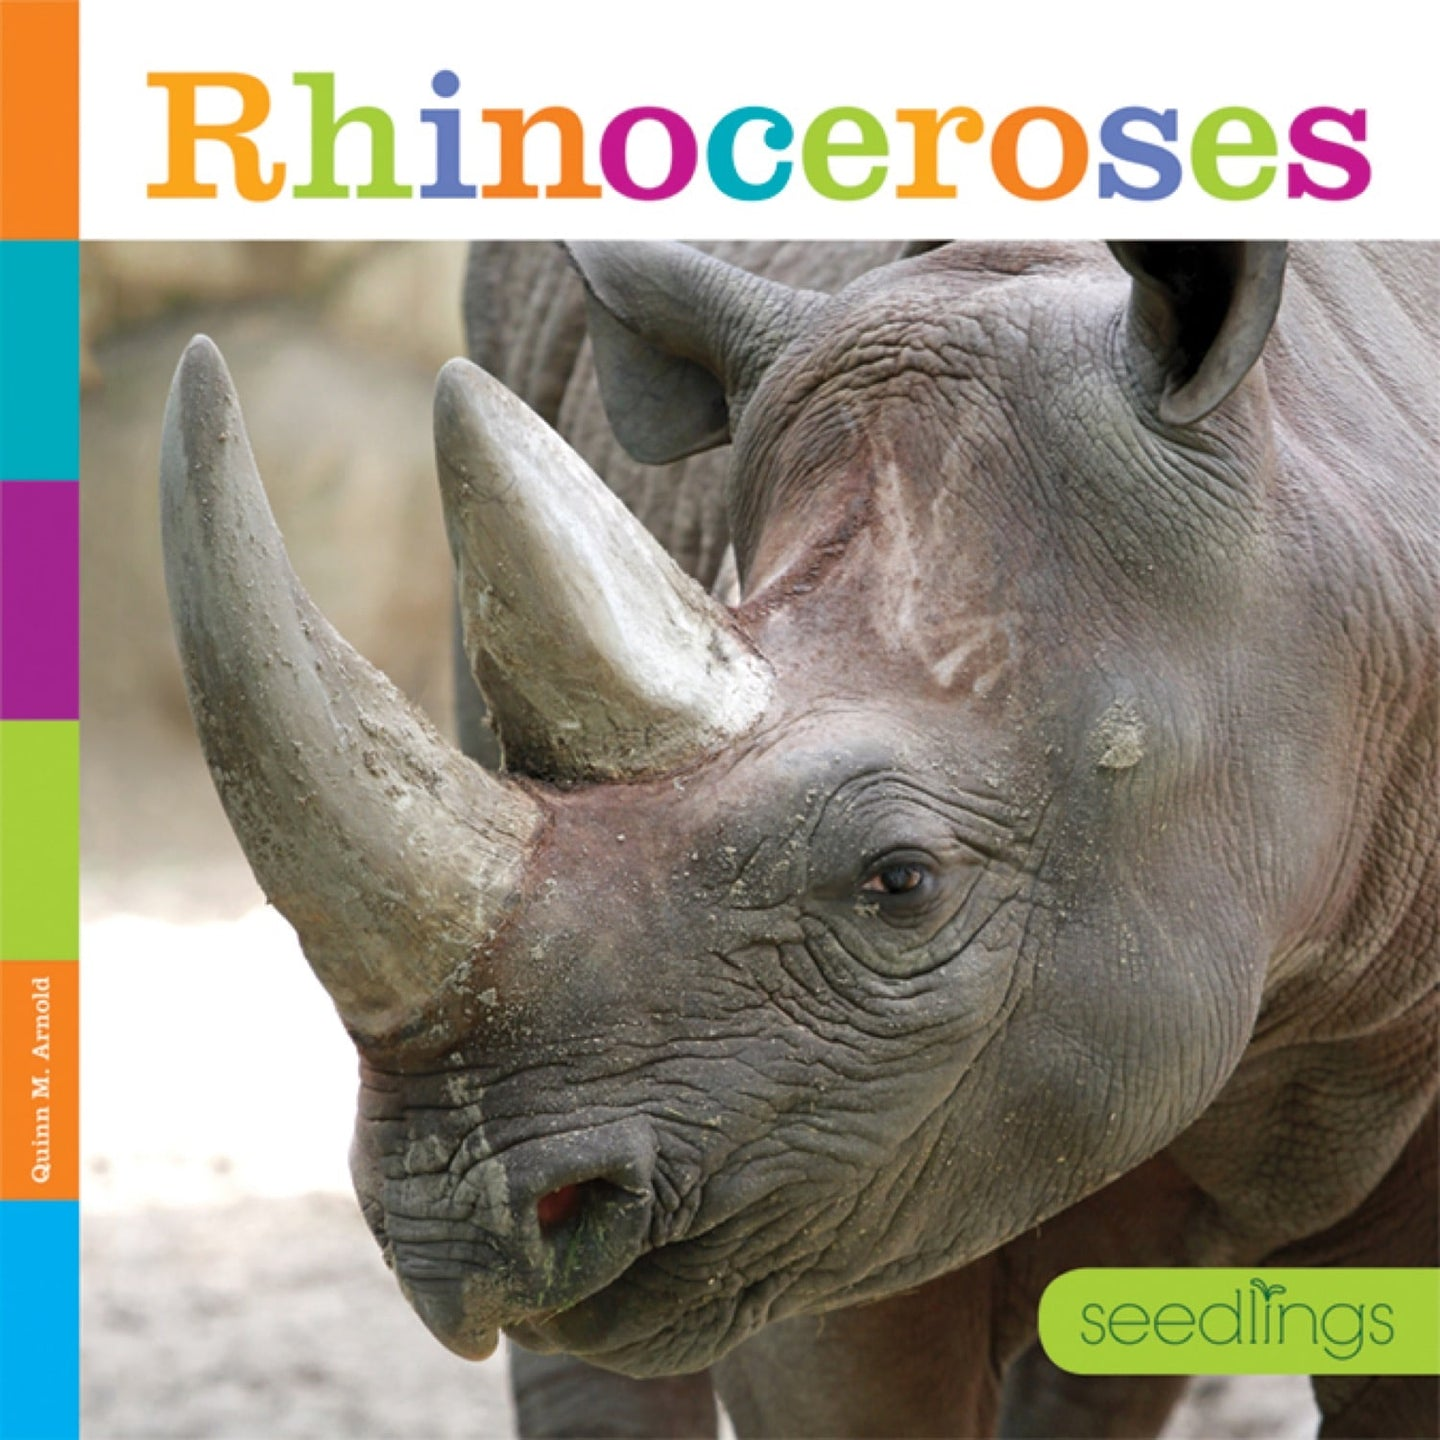 Seedlings: Rhinoceroses